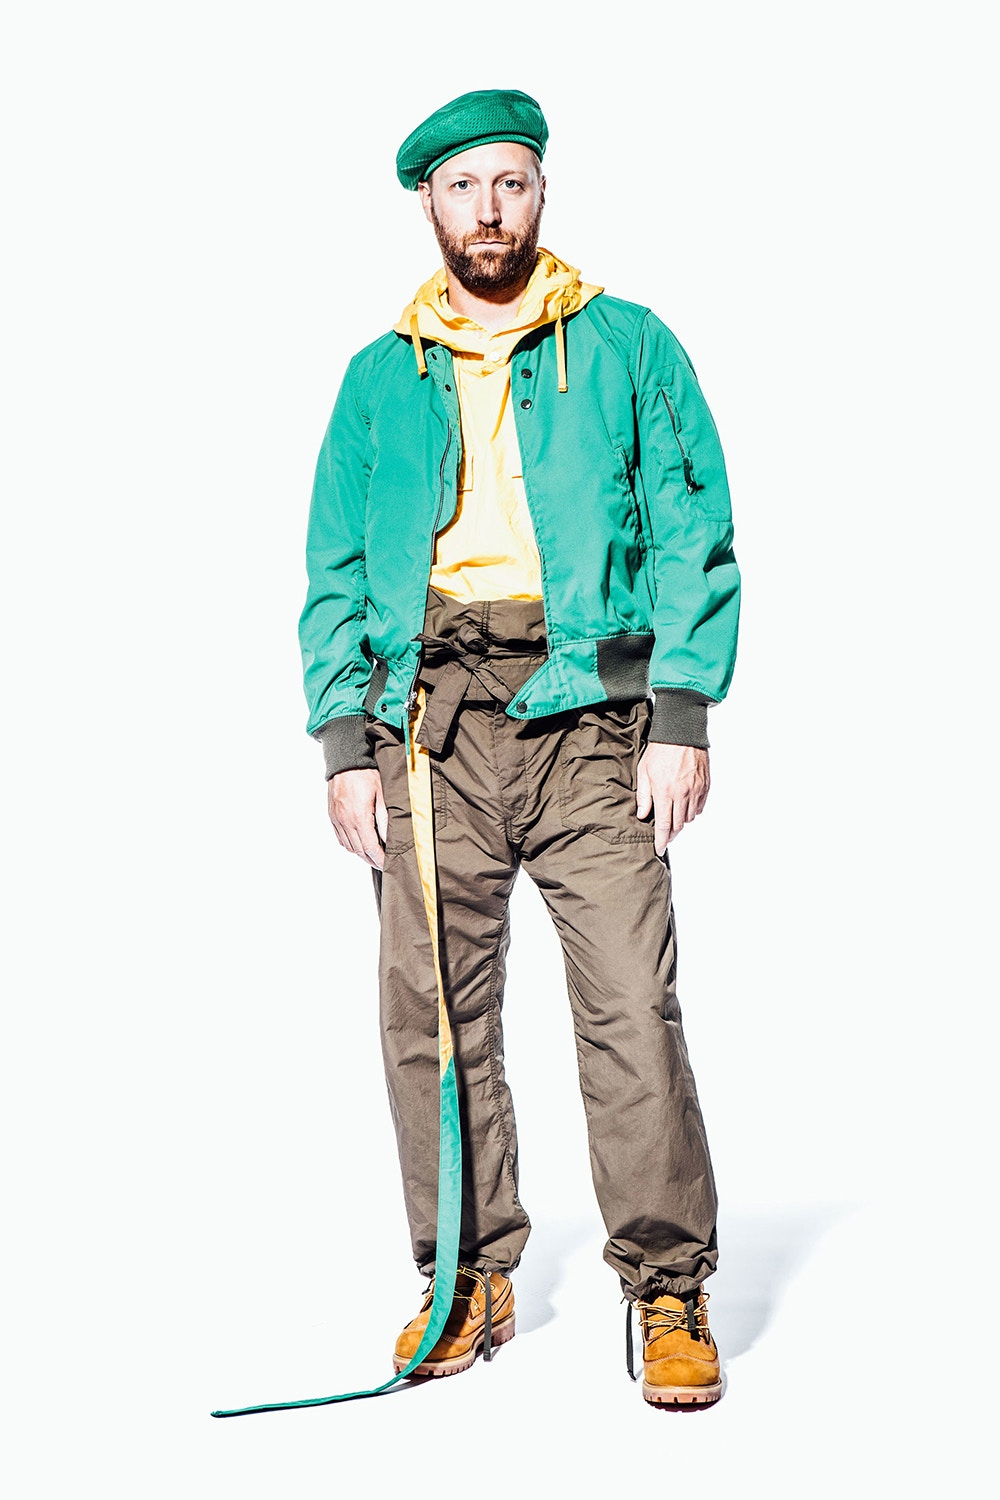 http-%2F%2Fhypebeast.com%2Fimage%2F2017%2F07%2FEngineered-Garments-Spring-2018-18.jpg